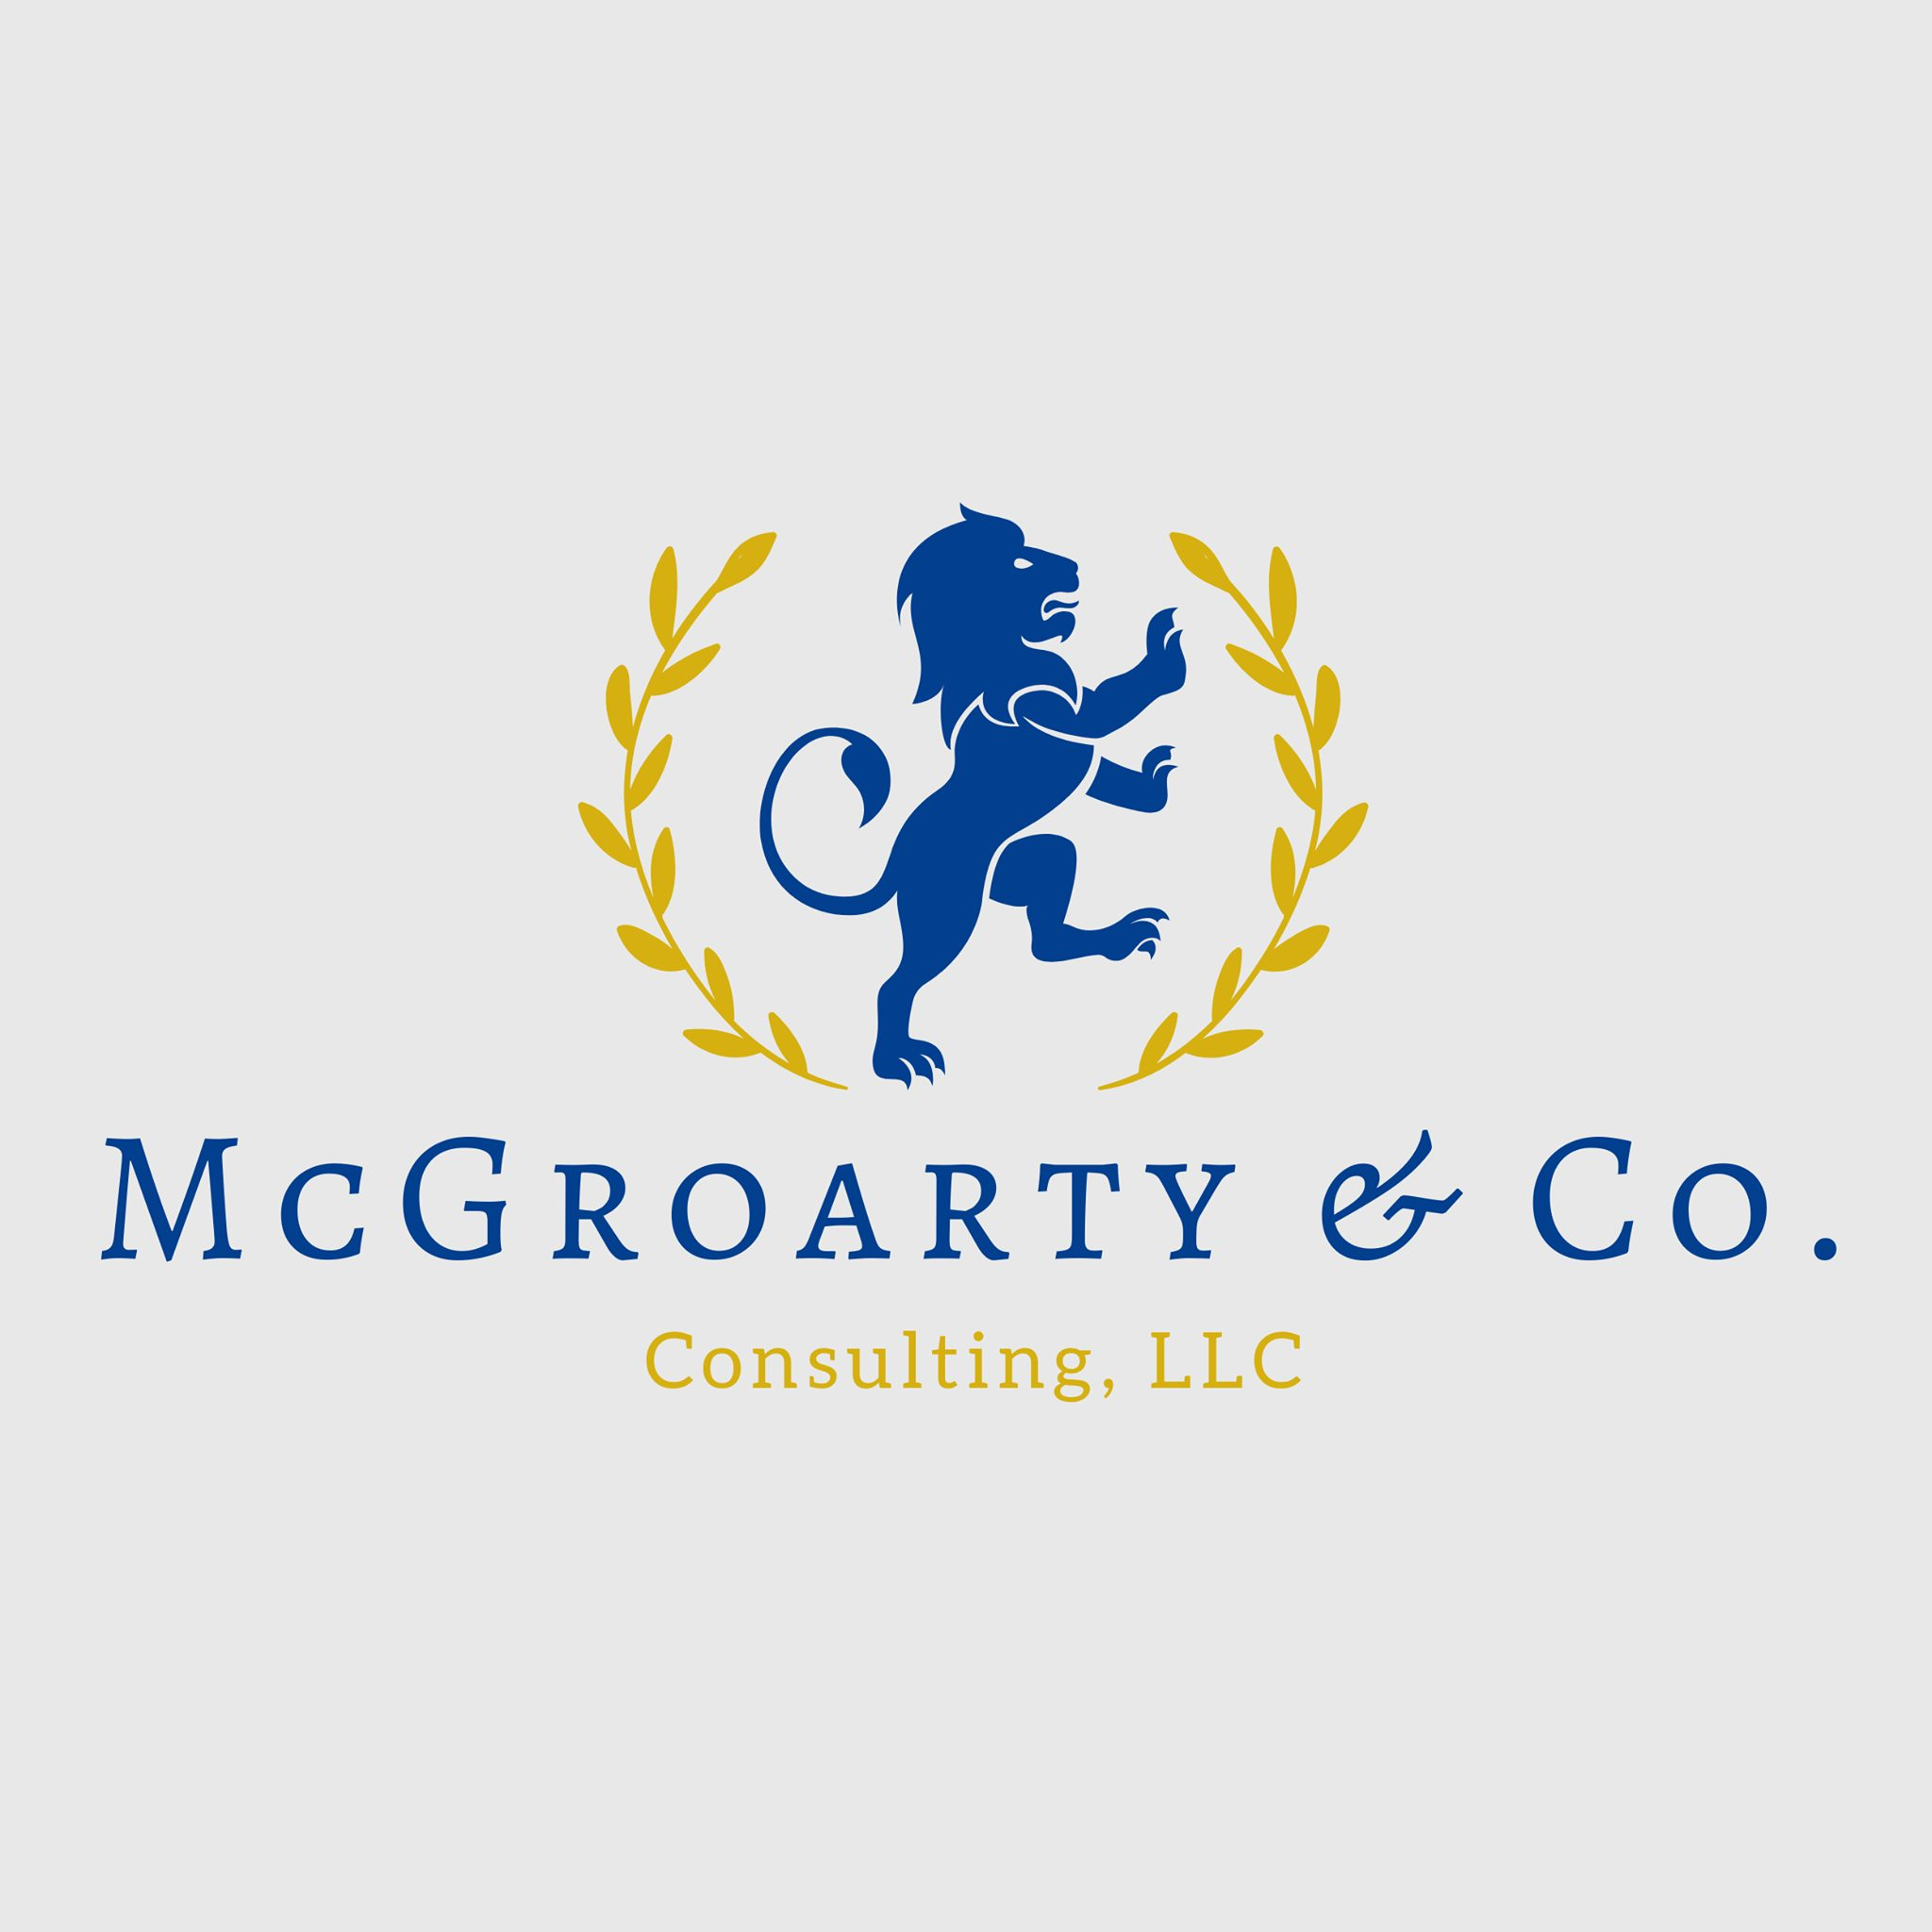 mcgroarty-co